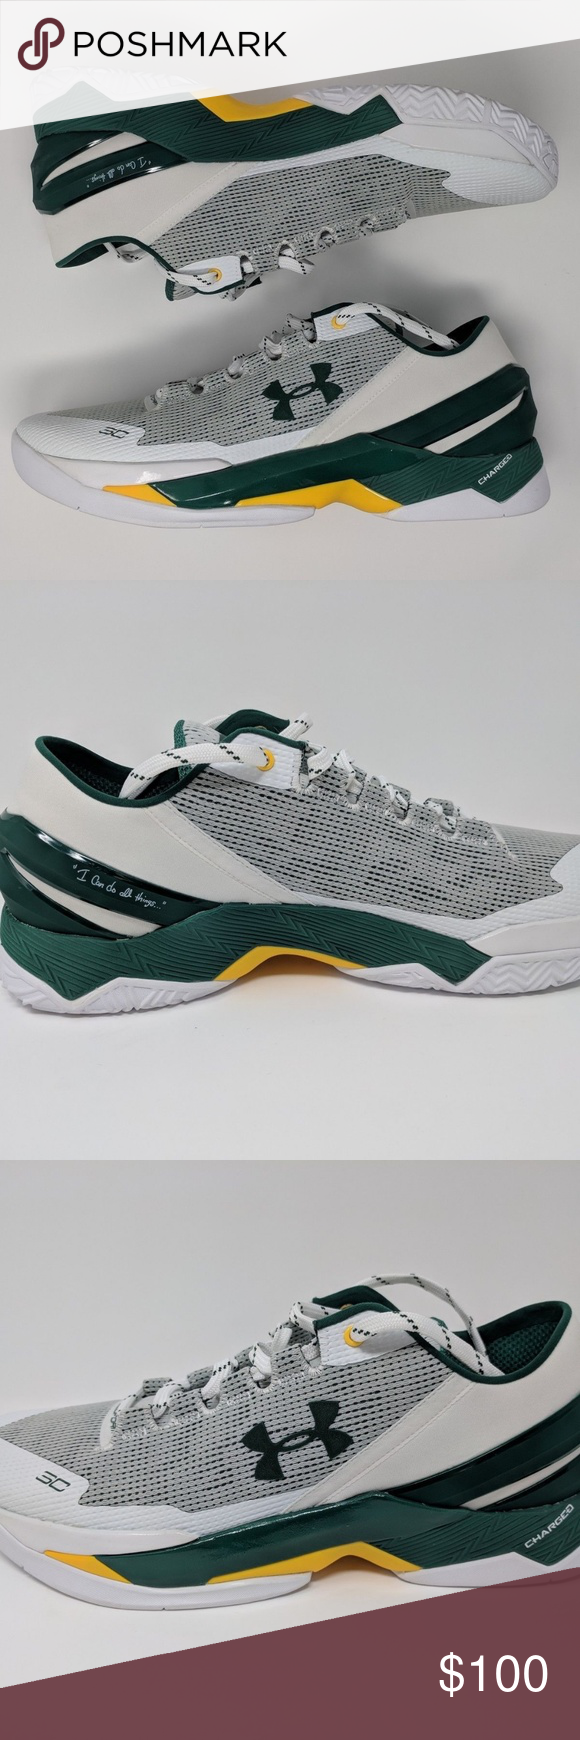 newest 06fd7 9d13a ... coupon code for under armour curry 2 low oakland as stephen curry 77461  a4251